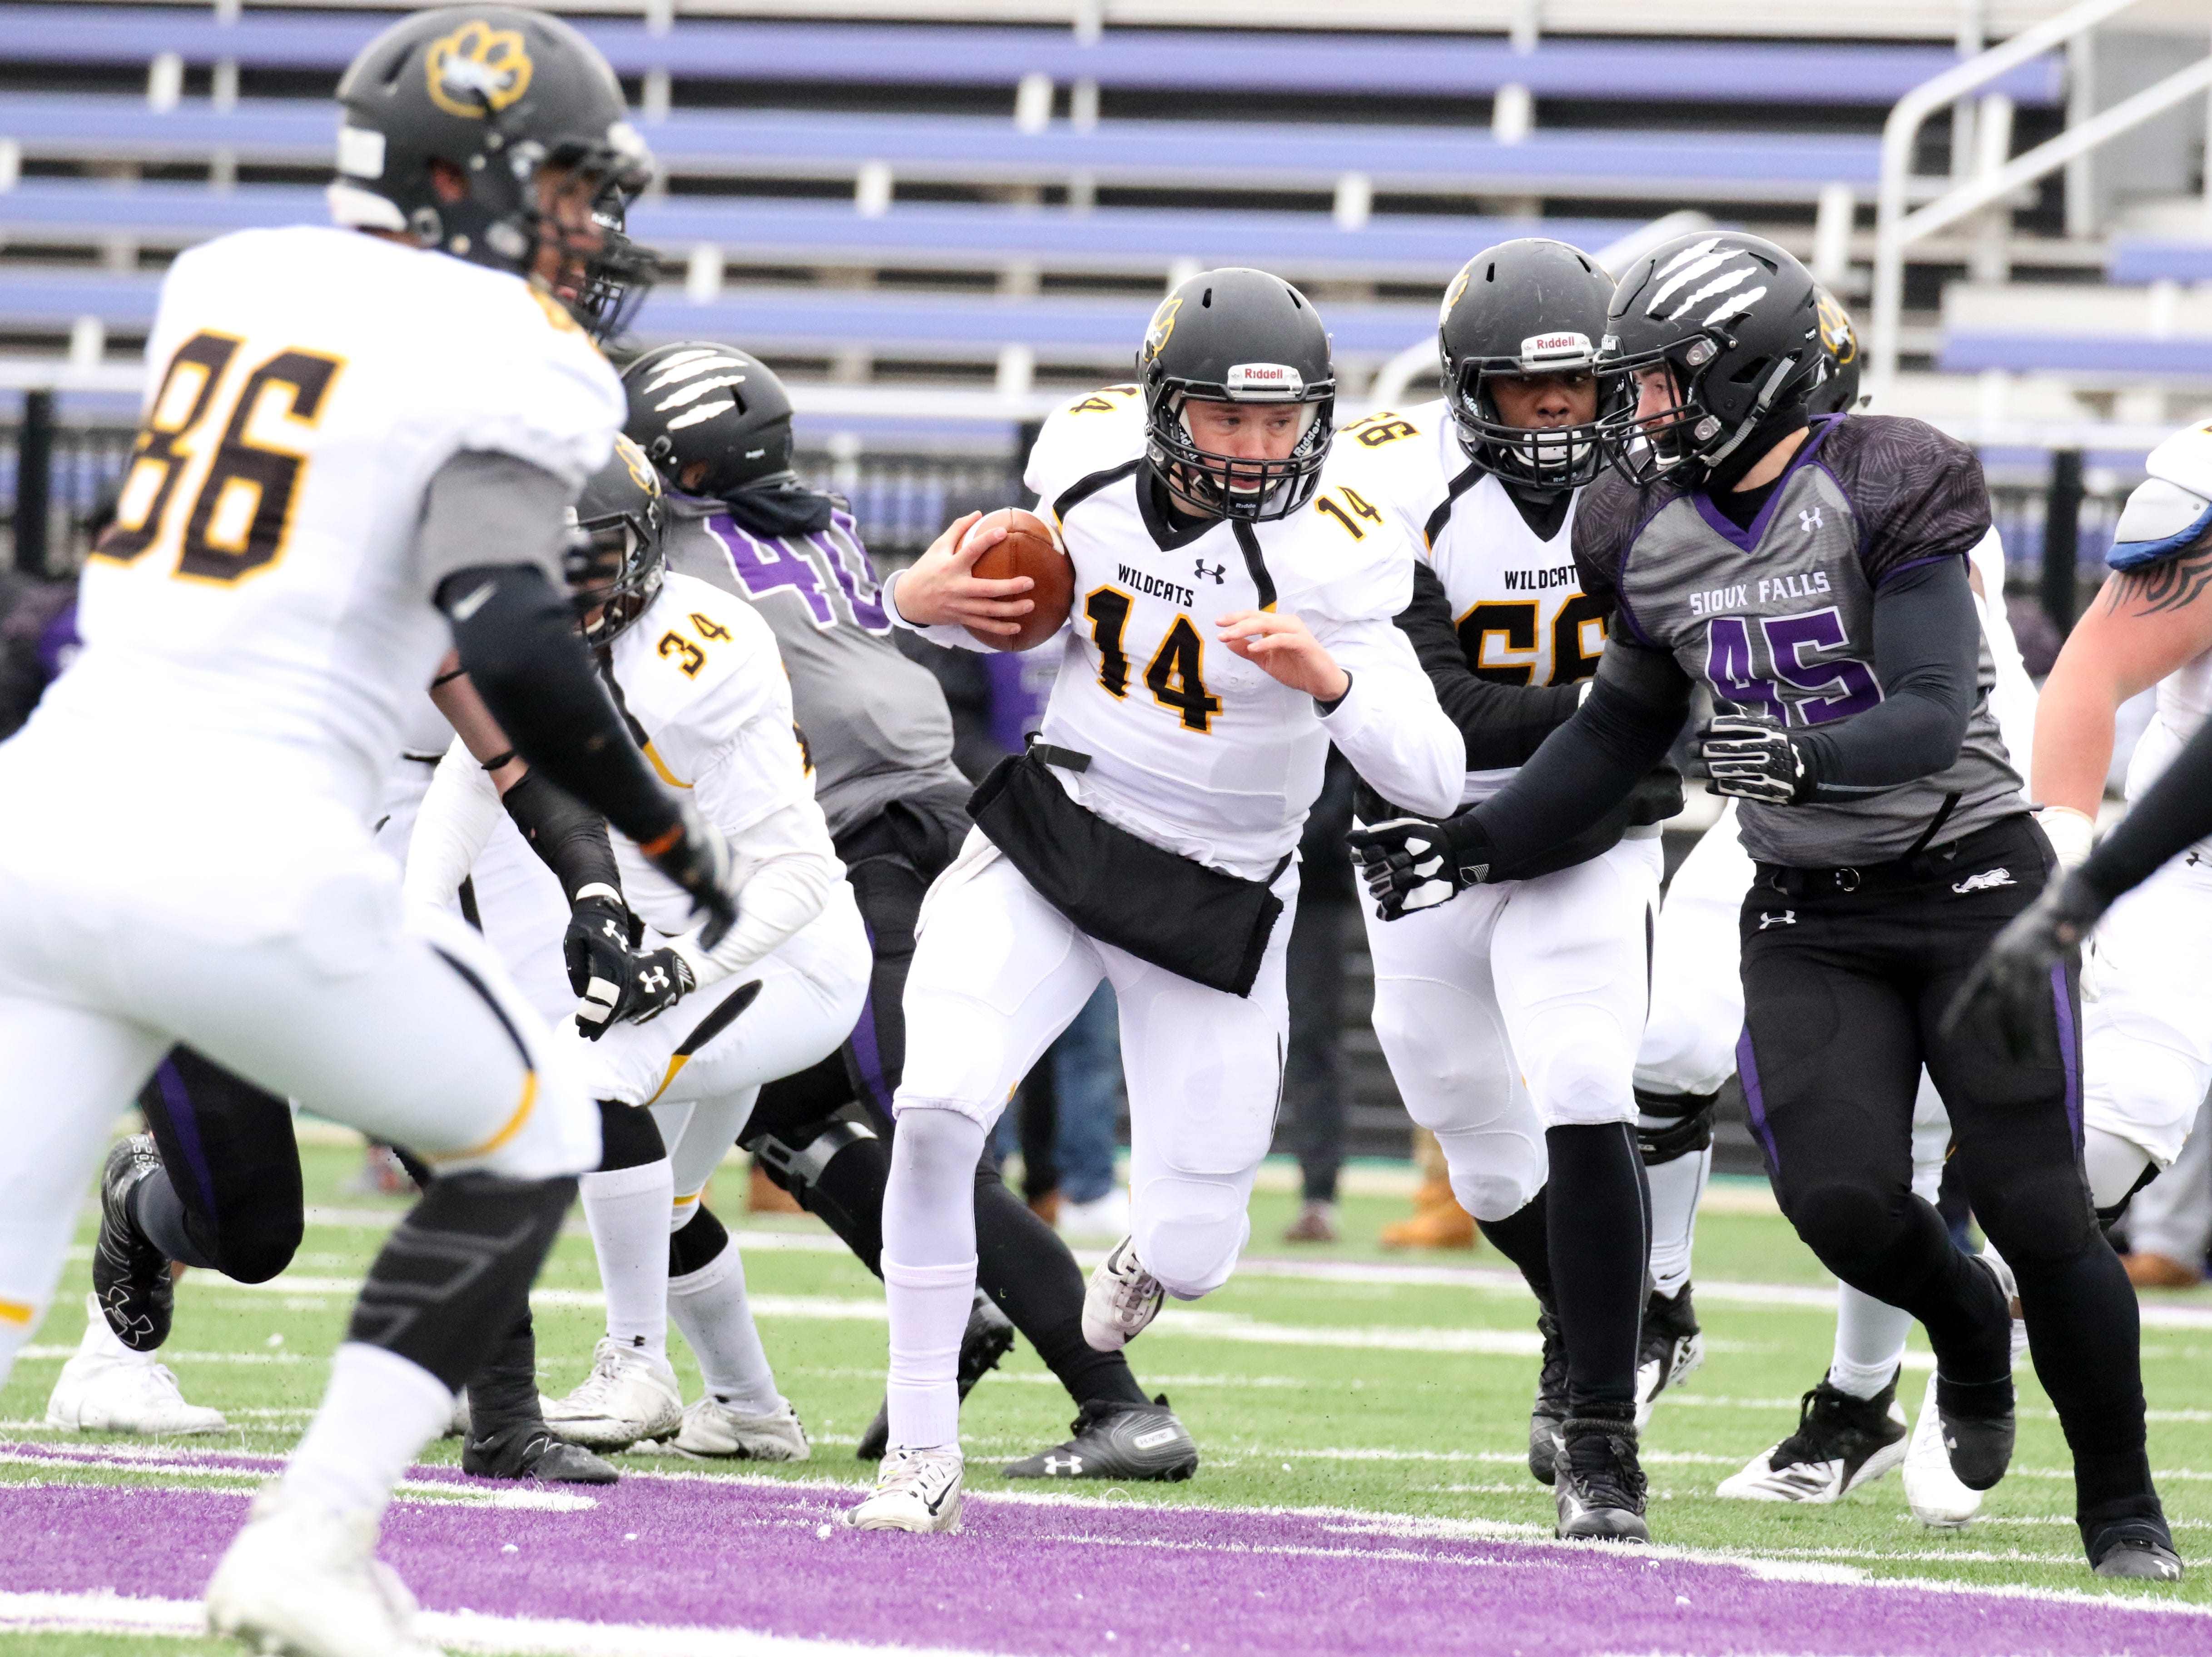 Wayne State QB, Alex Thramer looks to get past the defense of Joey Wehrkamp of the University of Sioux Falls during Saturday's game in Sioux Falls.